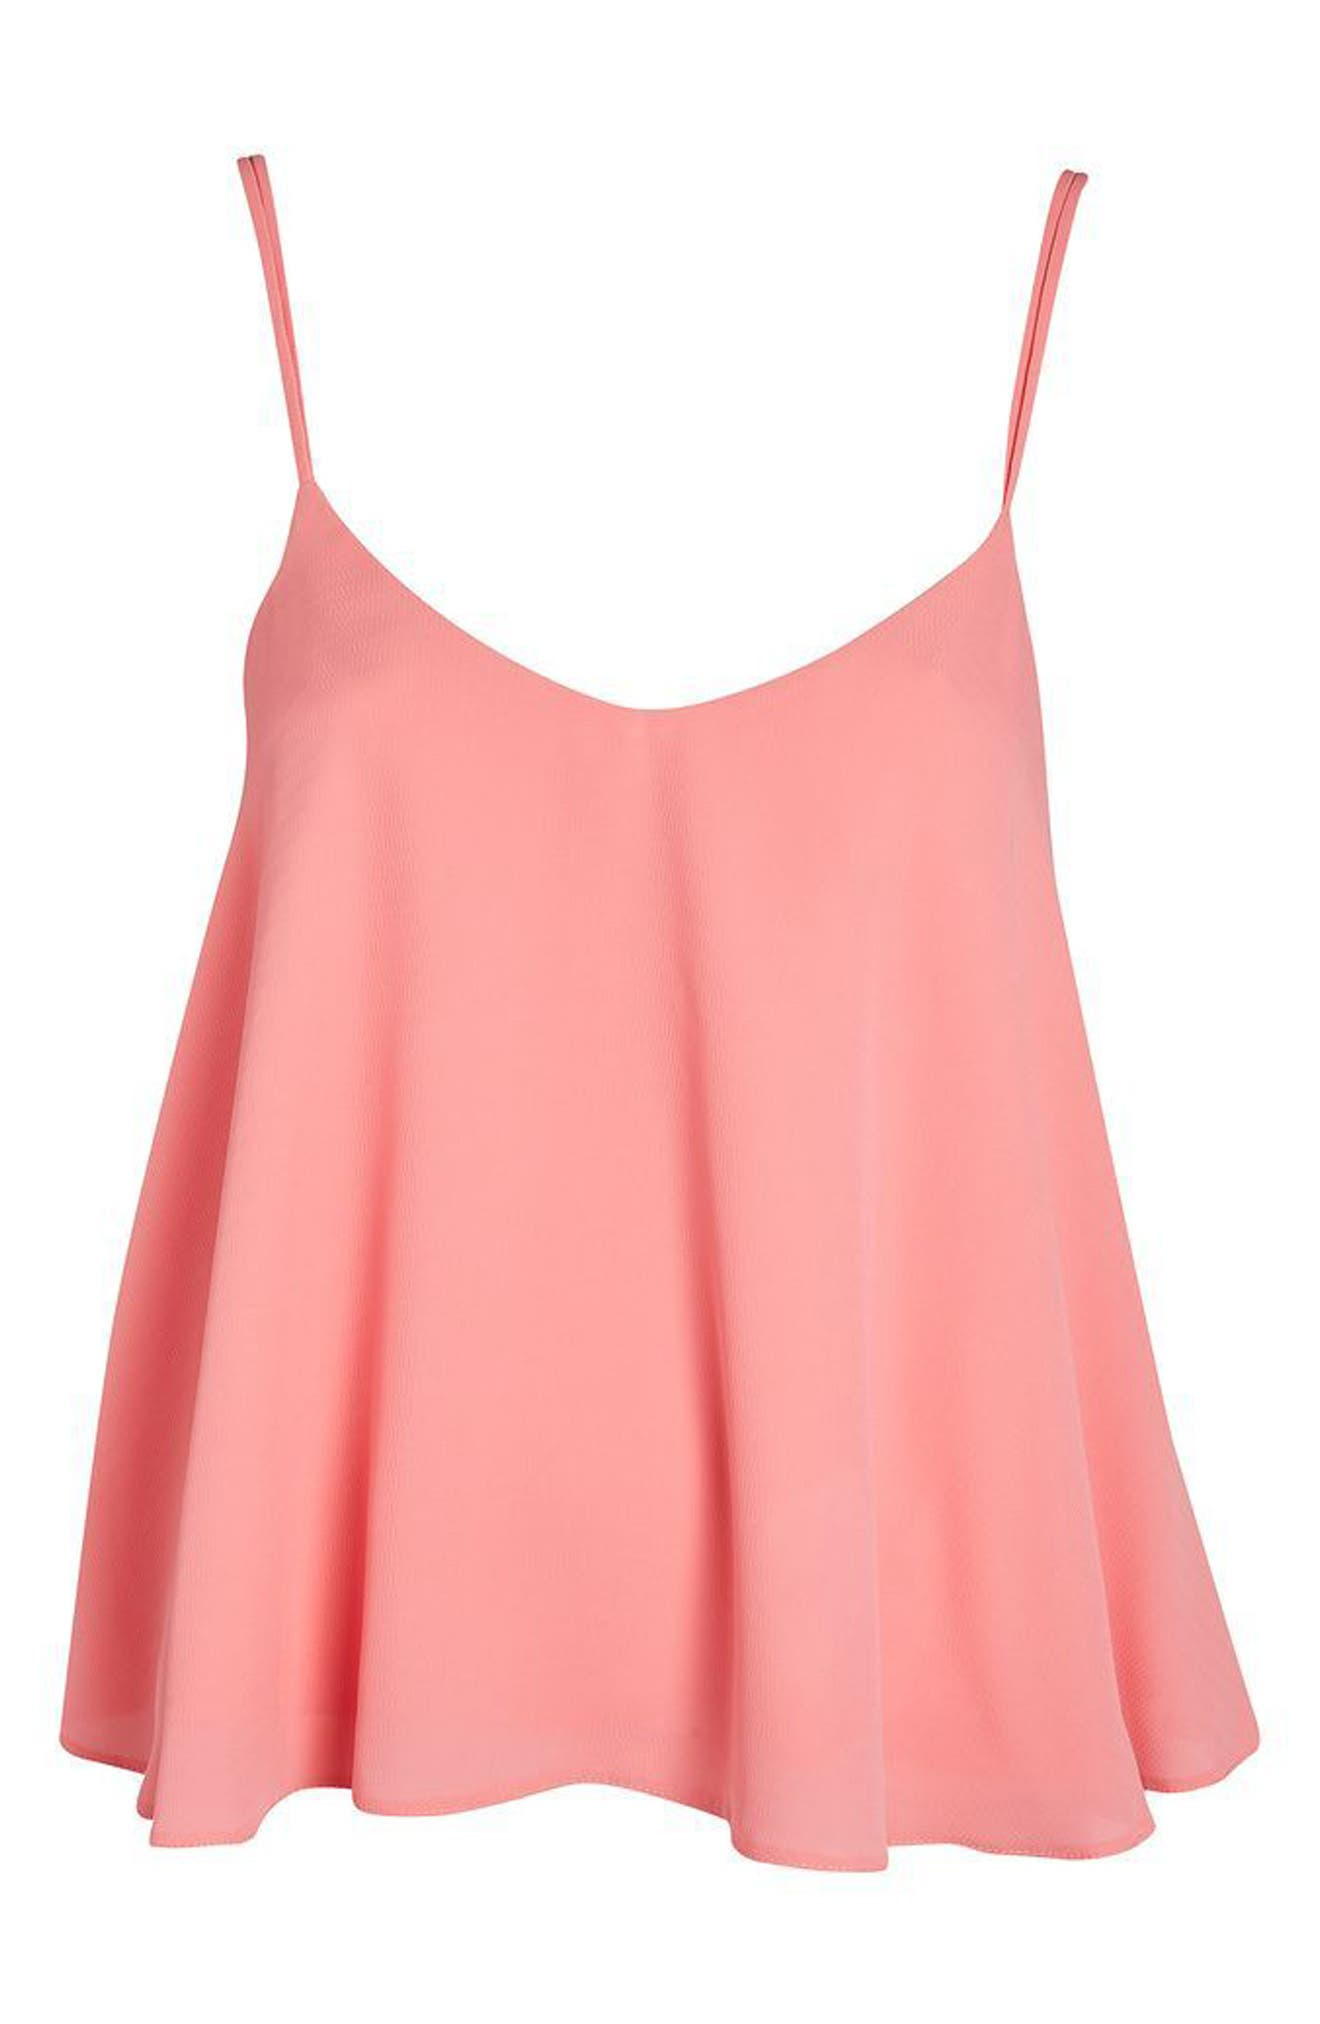 Rouleau Swing Camisole,                             Alternate thumbnail 4, color,                             670